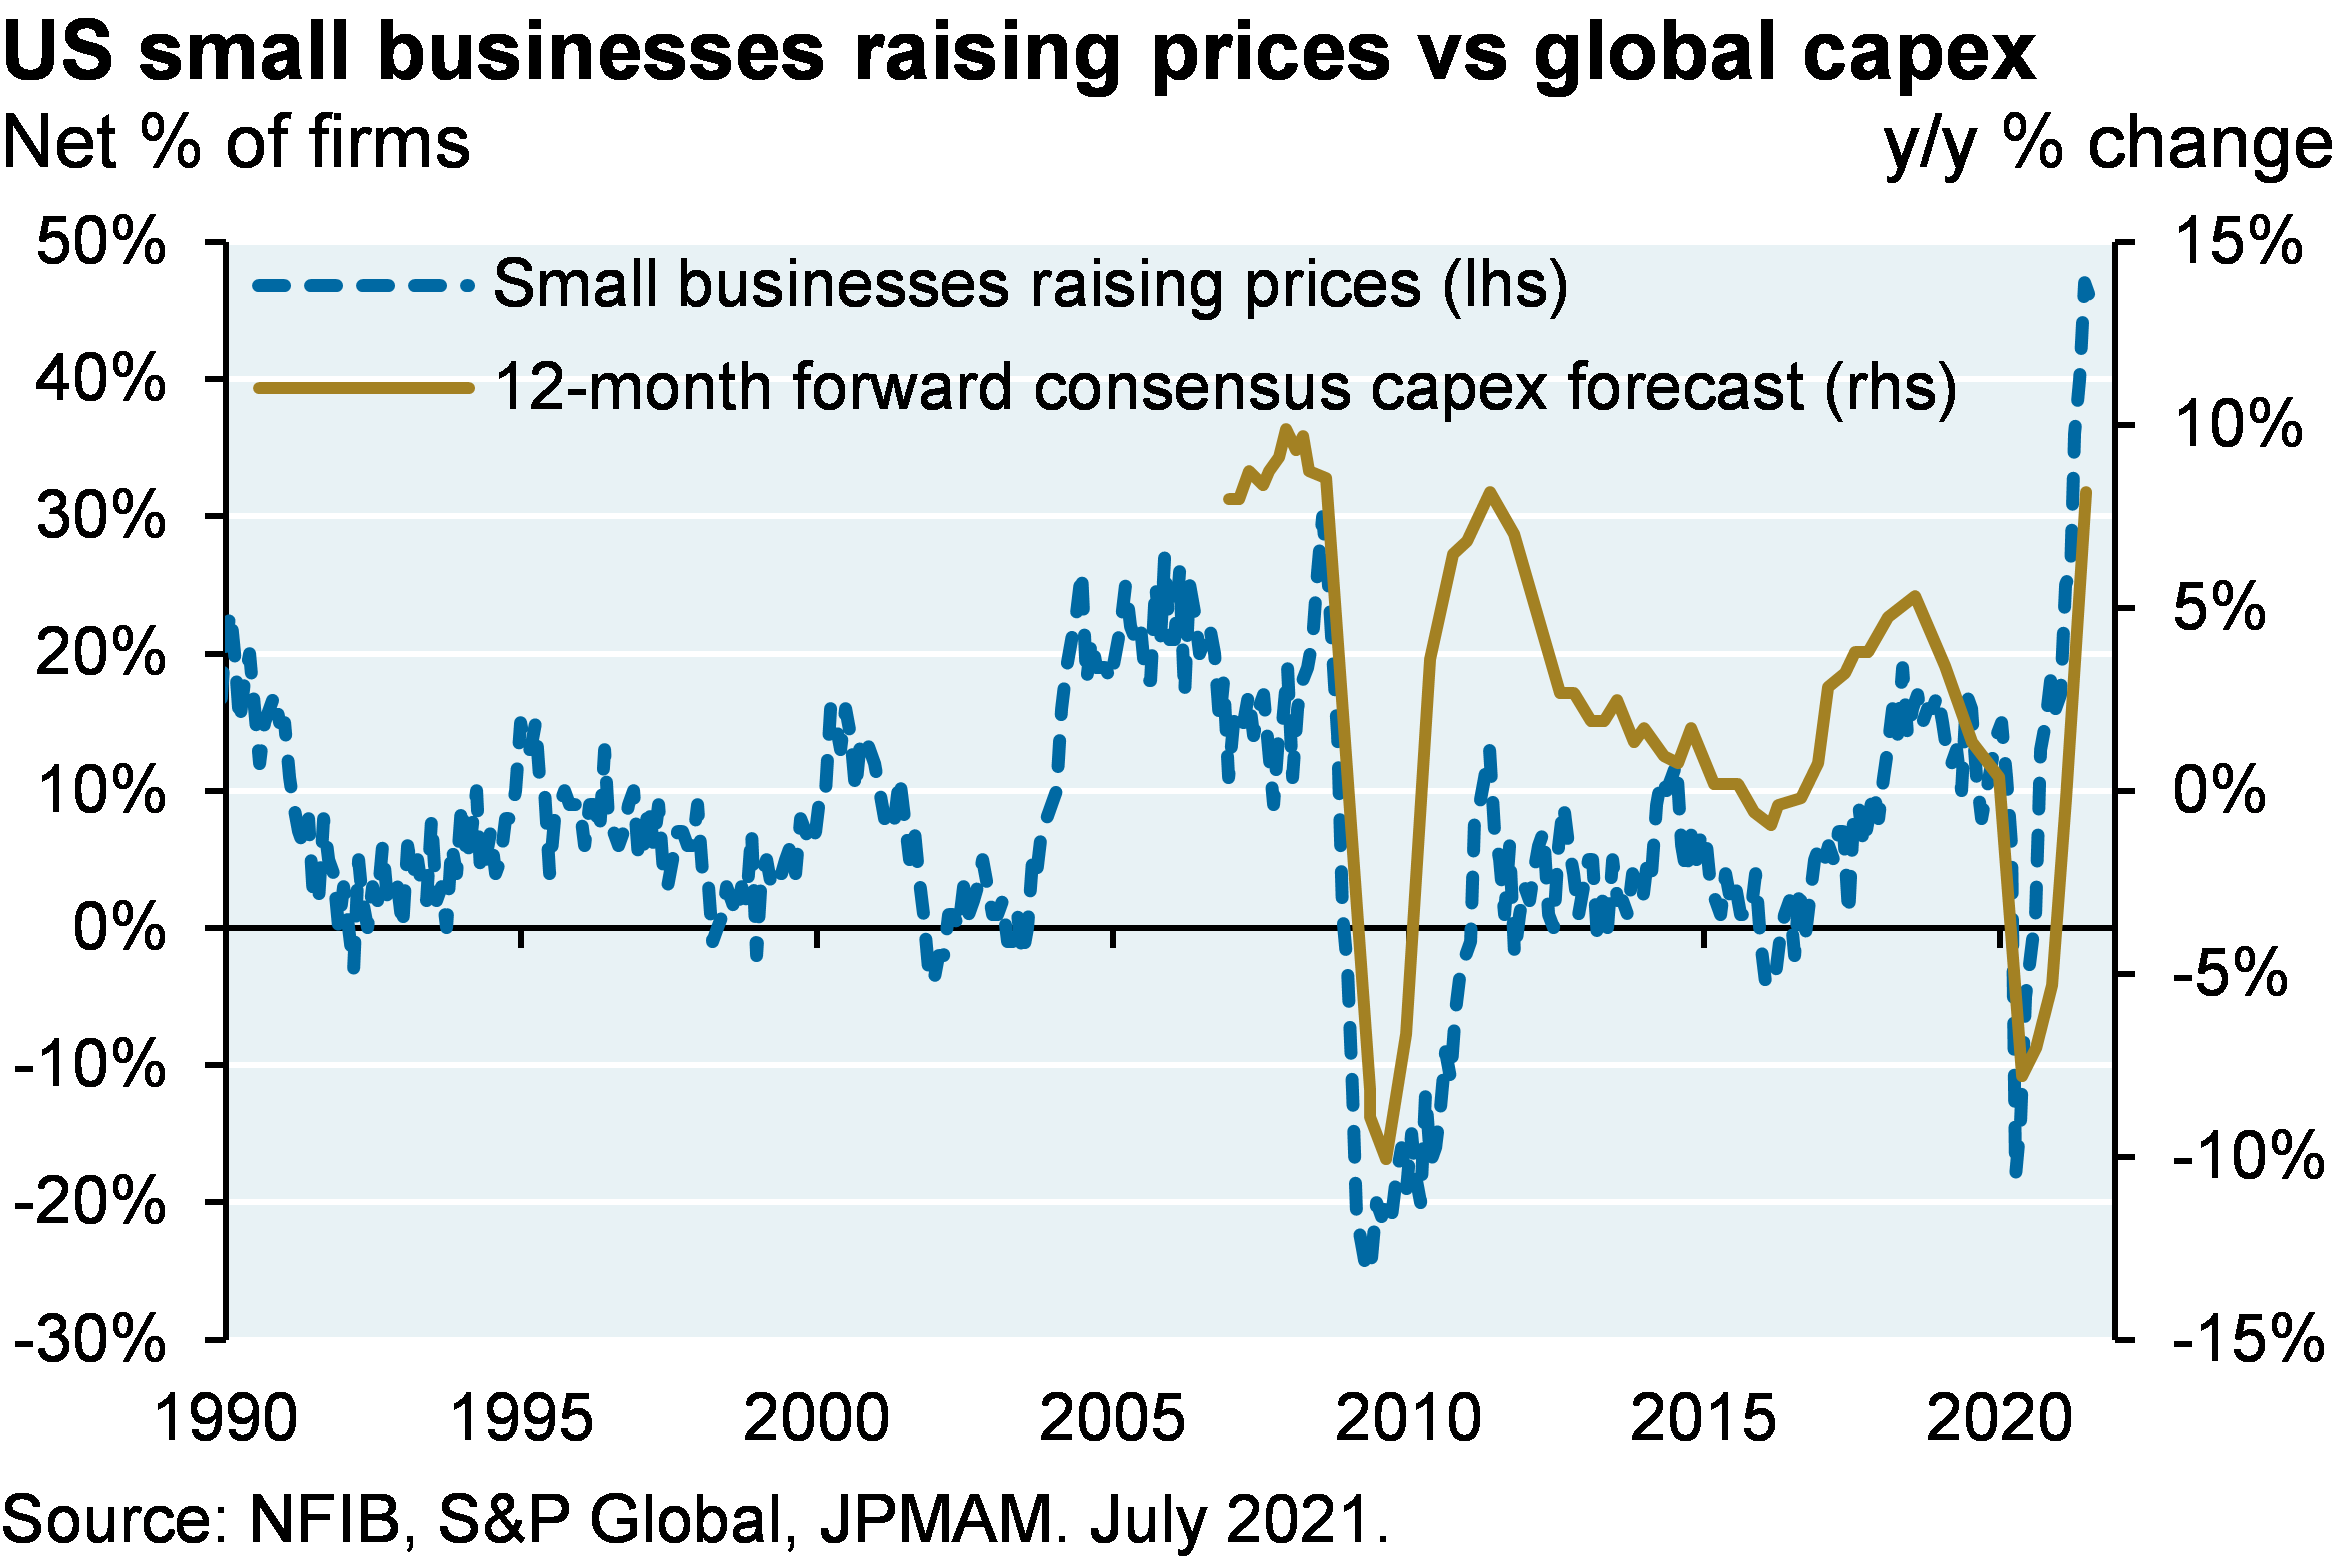 Line  chart shows the net % of small business survey respondents raising prices and the global 12-month forward consensus capex forecast, shown as the y/y % change. Chart shows that the net % of small businesses raising prices has sharply increased from -20% in 2020 to its most recent value of nearly 50%. Chart shows that the y/y % change in consensus capex forecasts have recently spiked from around -8% in 2020 to 8% at its most recent point, which is close to all its all-time highs of ~10% in the early 2000s.